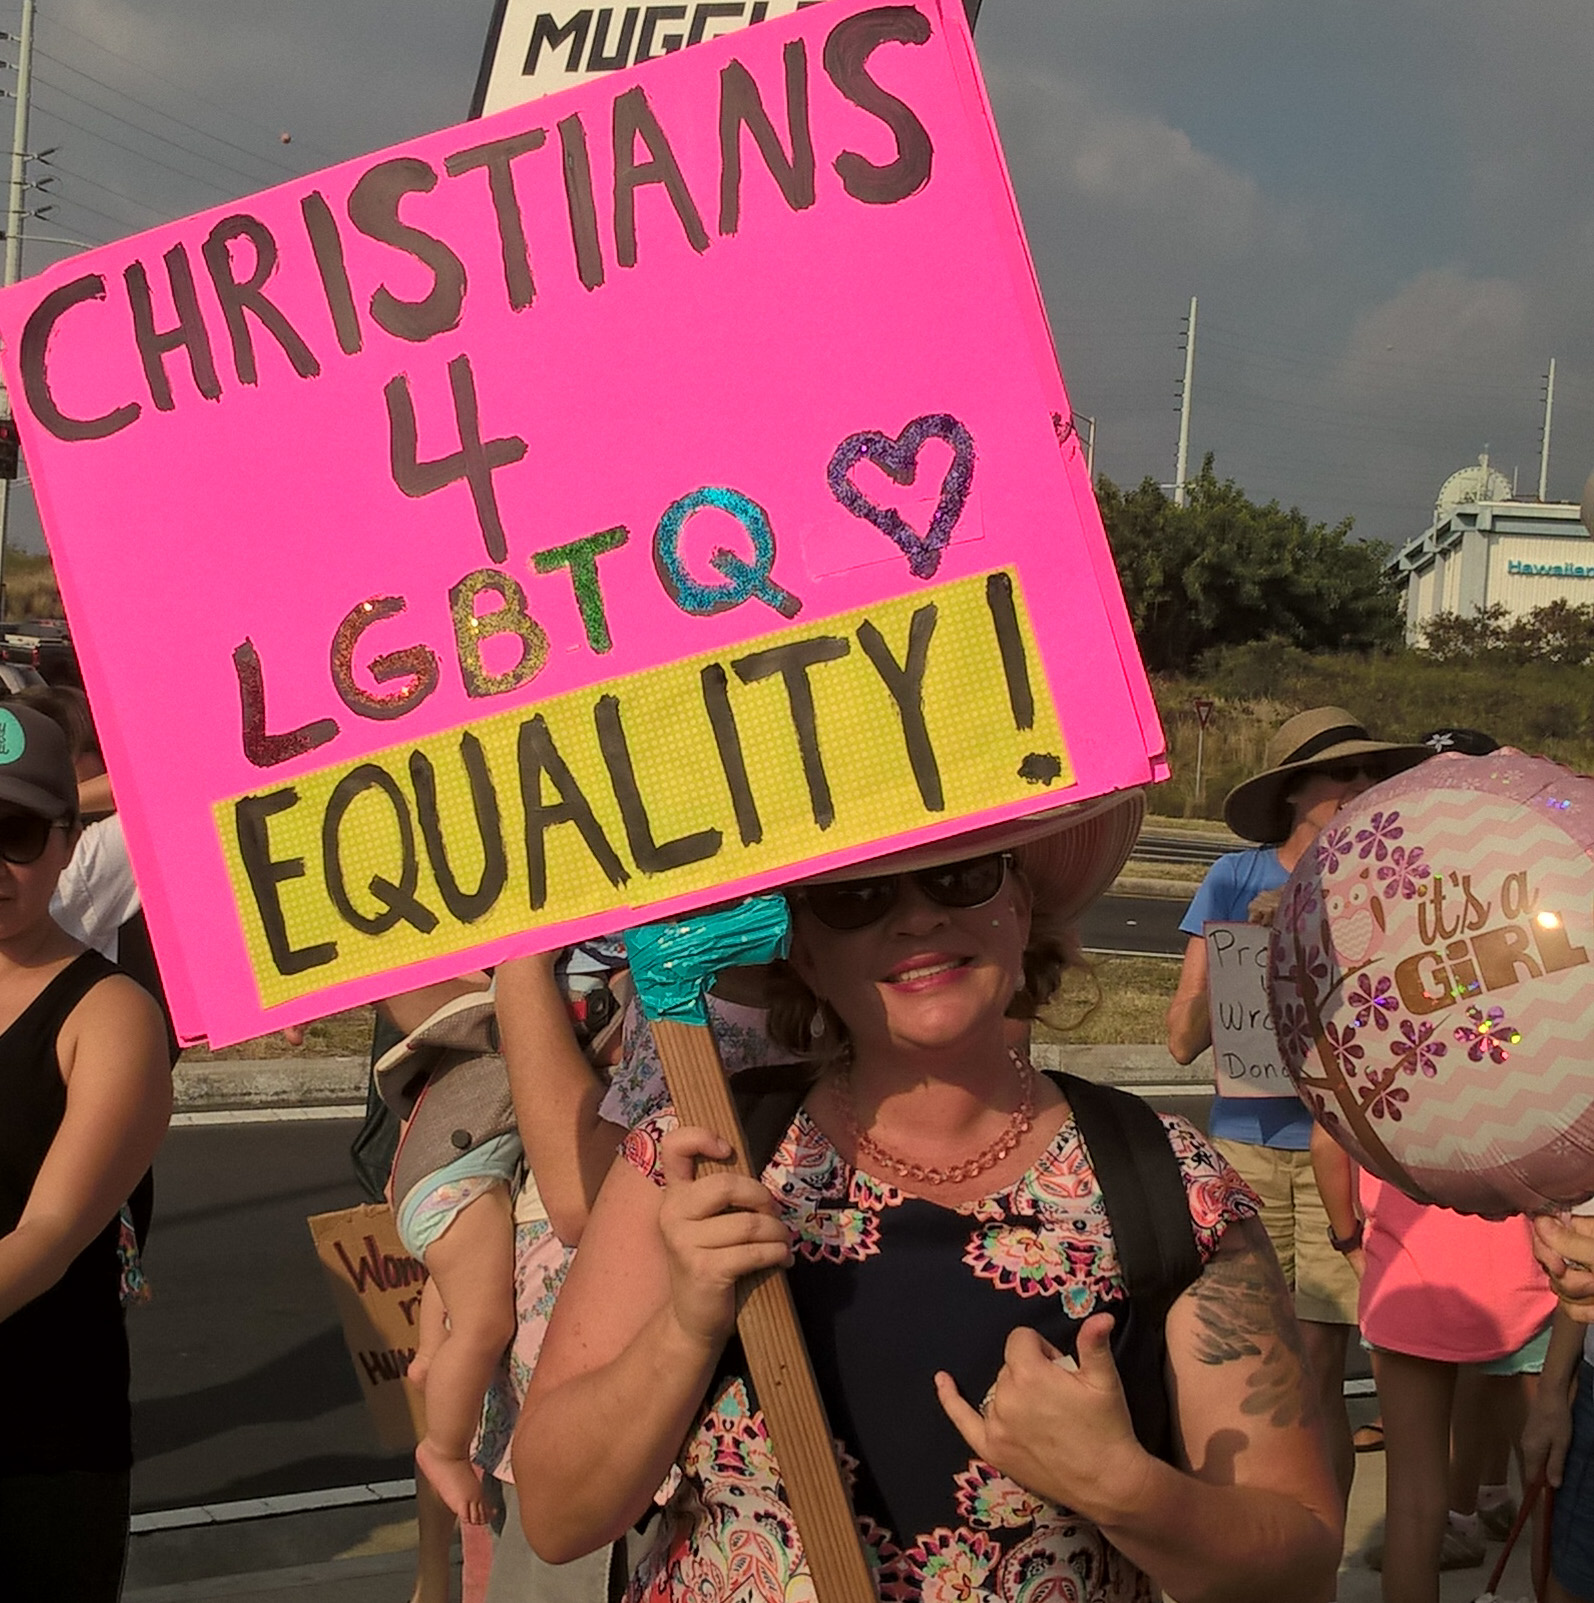 Christian protester at Women's March, photo by Patricia 'Iolana